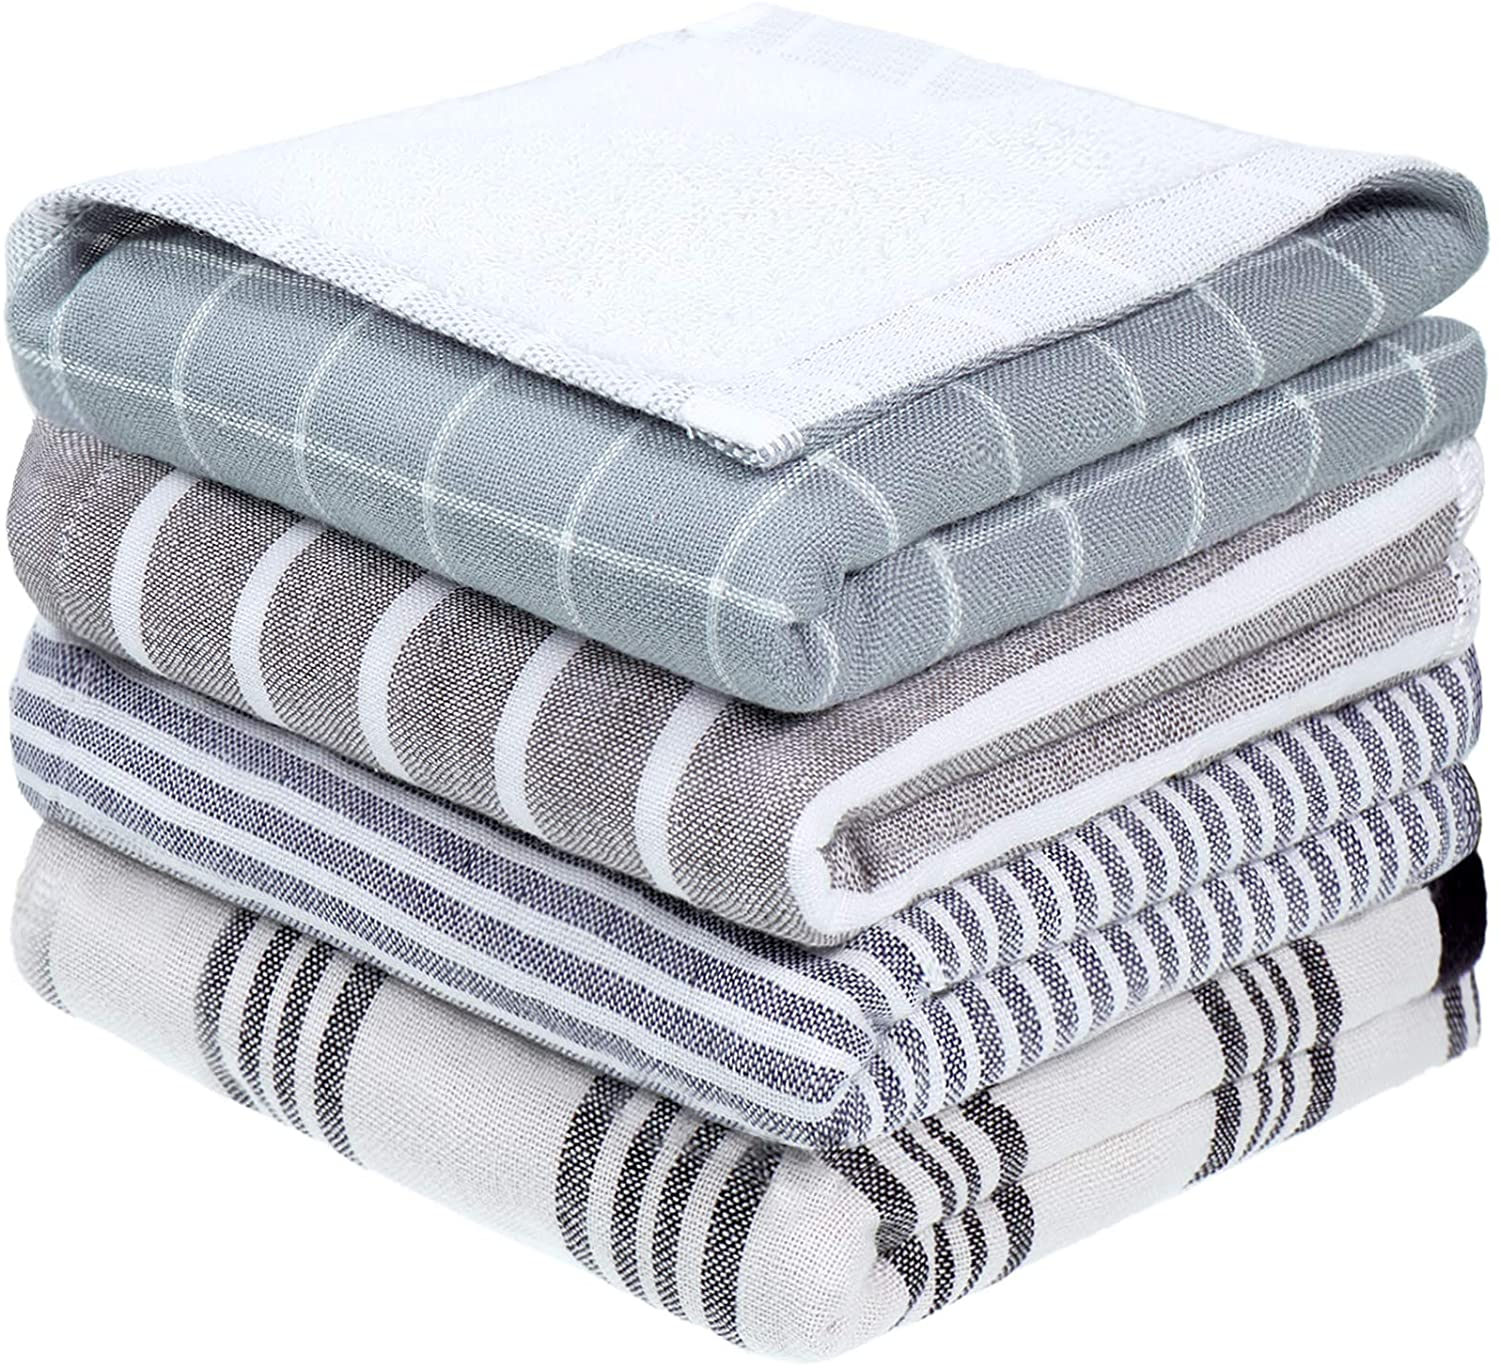 4 Pieces Kitchen Dish Towels Cotton Fabric Kitchen Cleaning Dish Rag Plaid and Stripe Designed Absorbent Tea Towel for Home Household Kitchen Supplies, 14 x 30 Inch